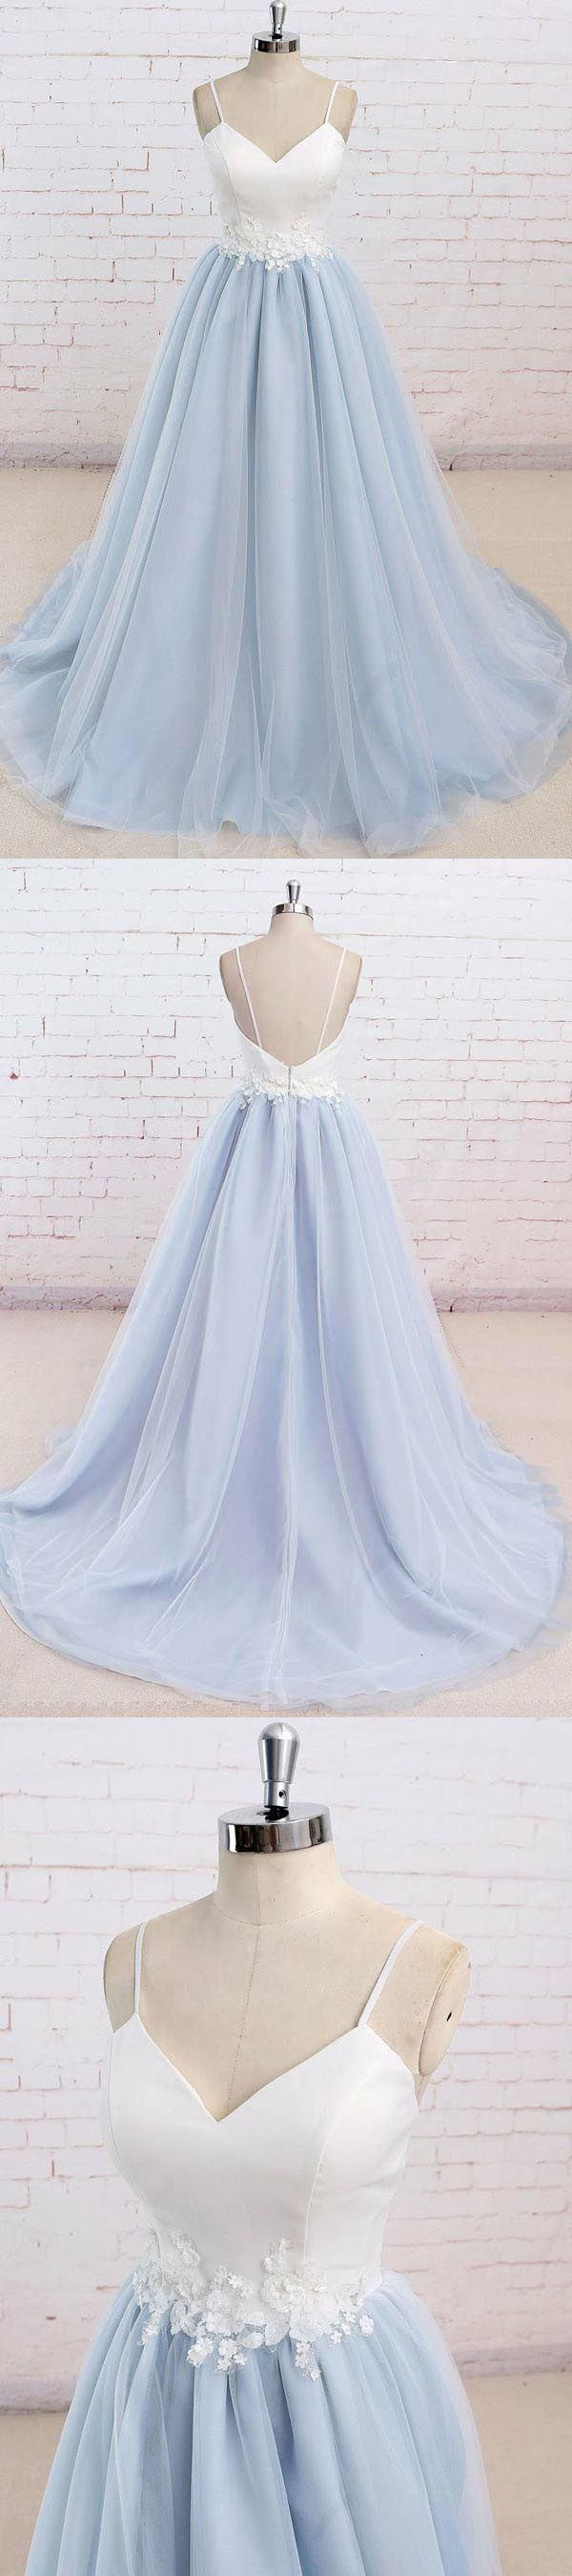 SPAGHETTI STRAPS SWEEP TRAIN BACKLESS BLUE TULLE PROM KLEID PG498